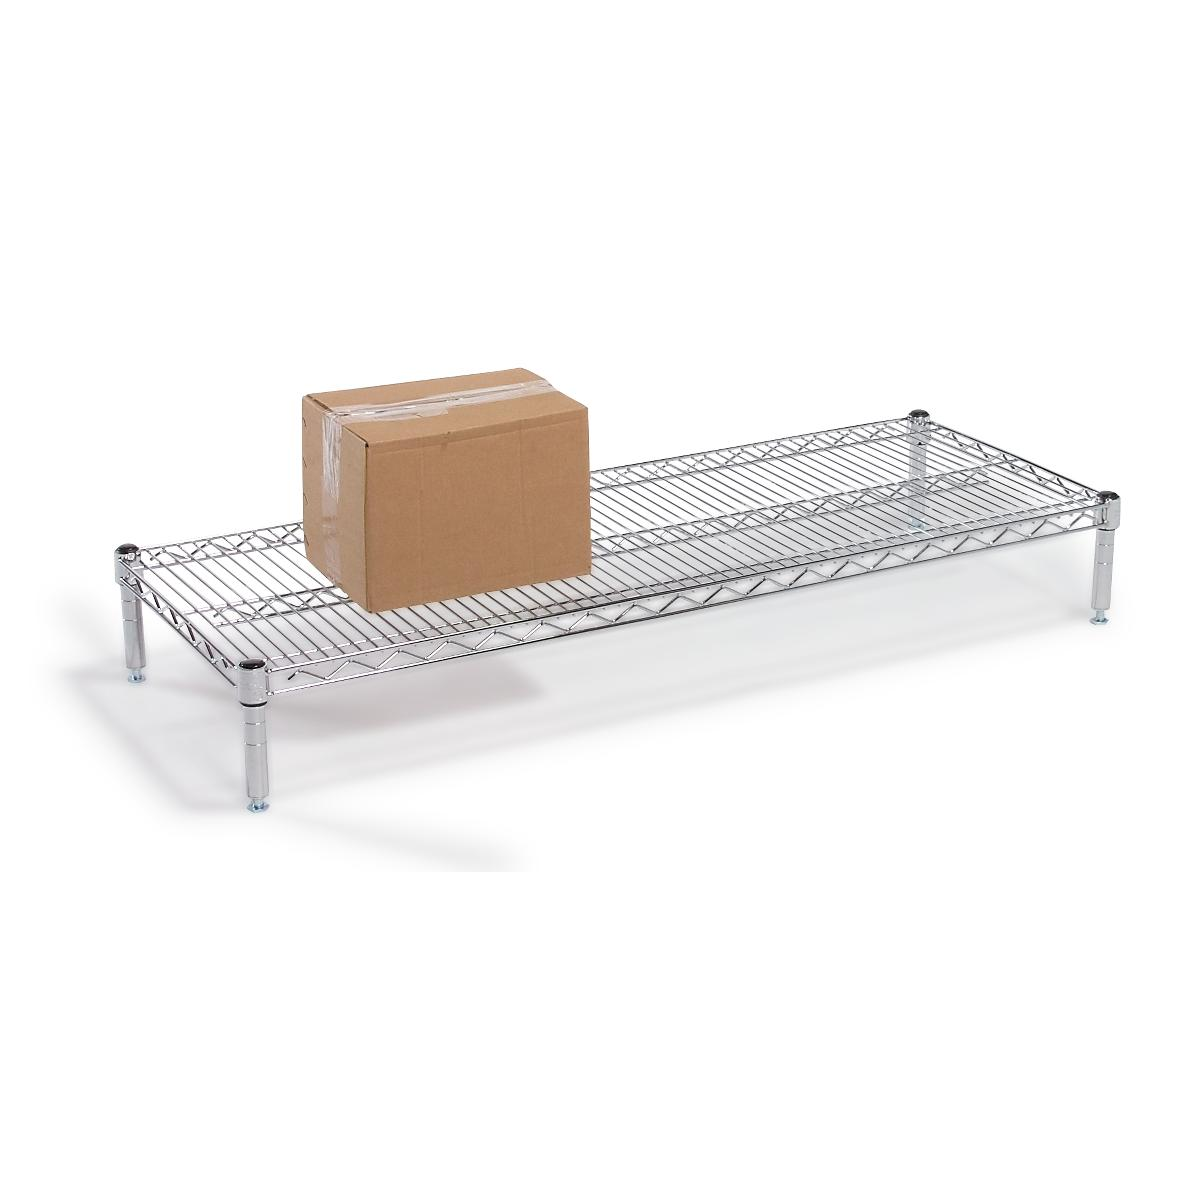 Chrome Wire Platforms With Shelves By Tarrison   Medline Industries